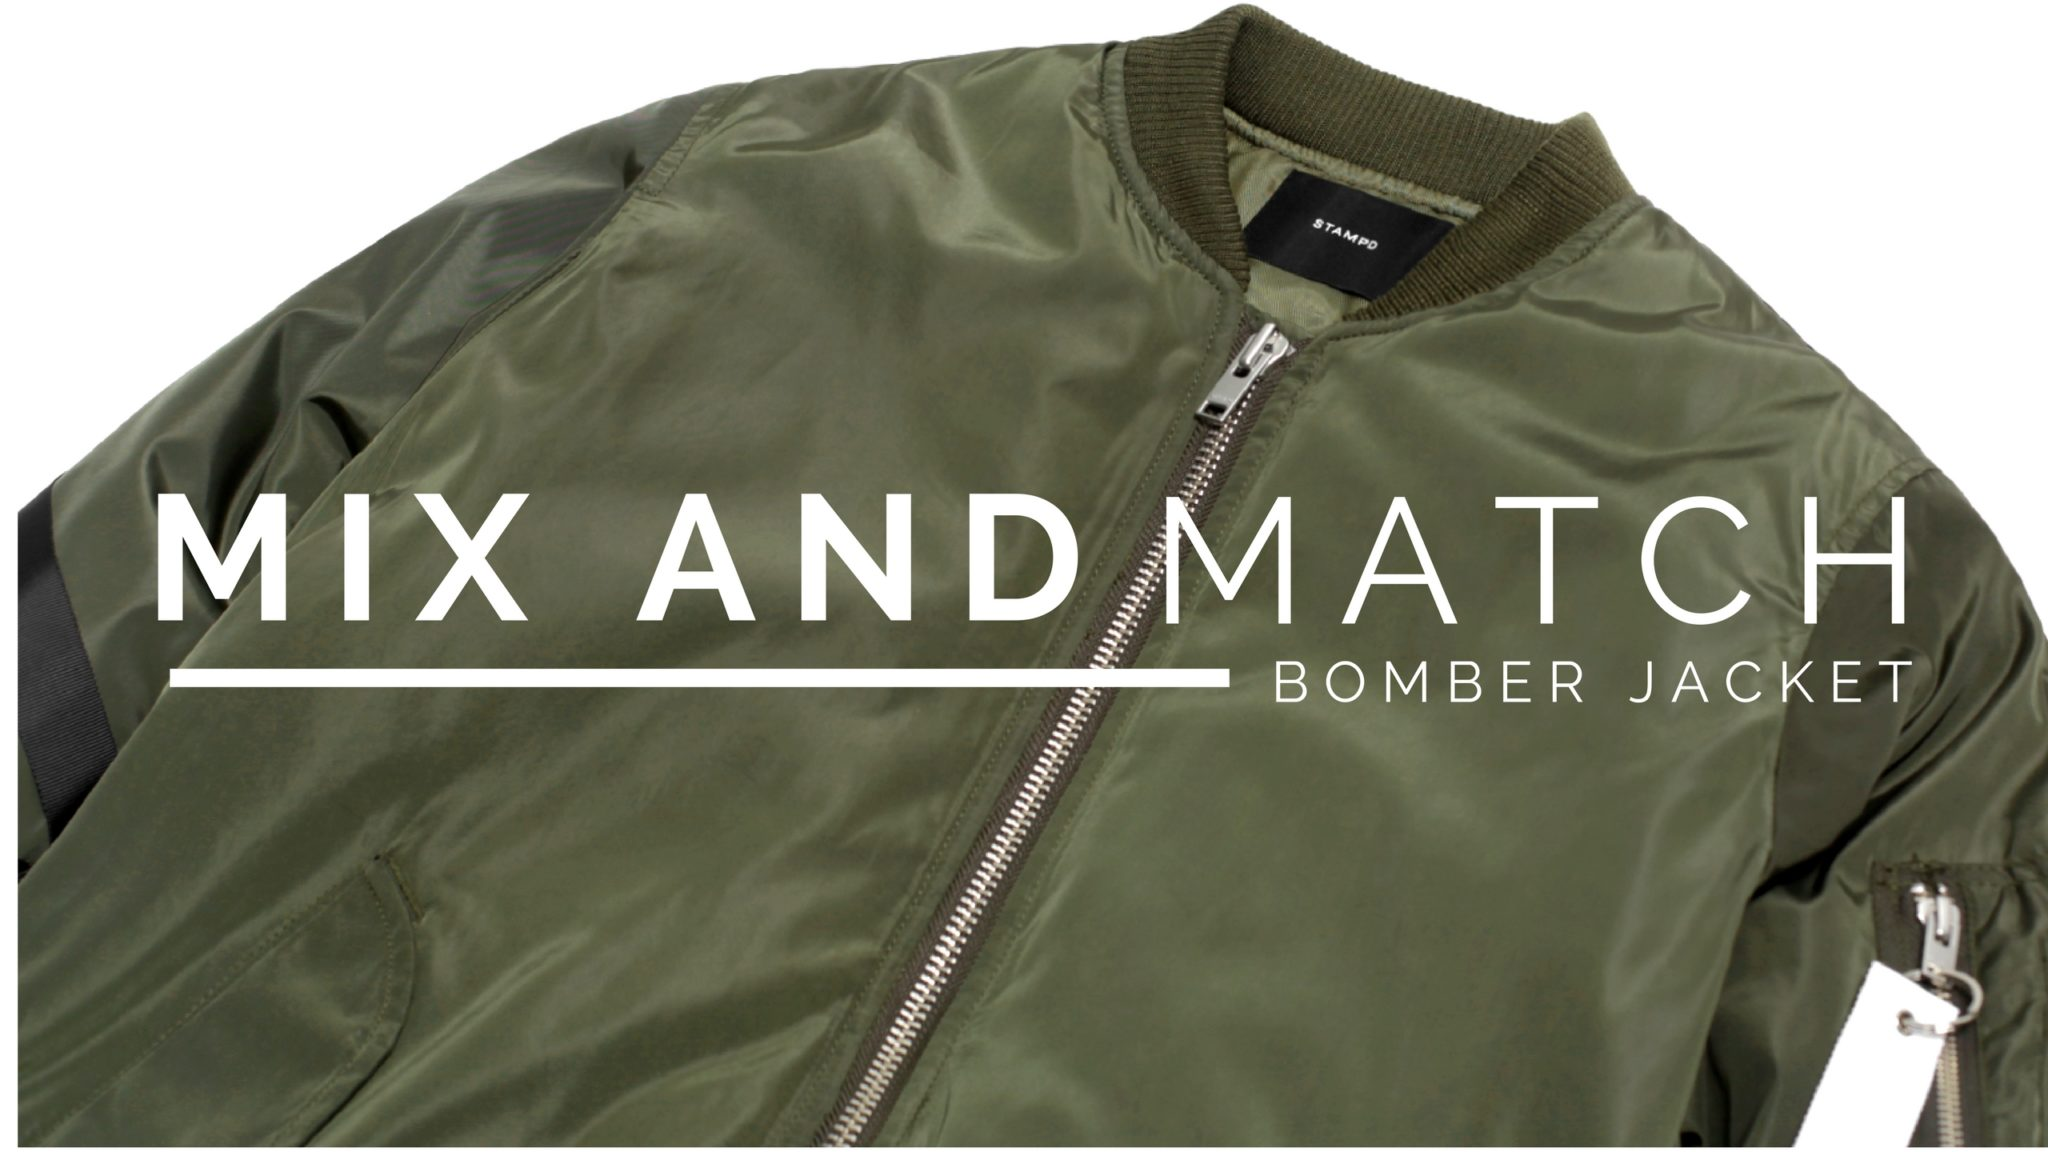 10 Item Mix and Match Bomber Jacket